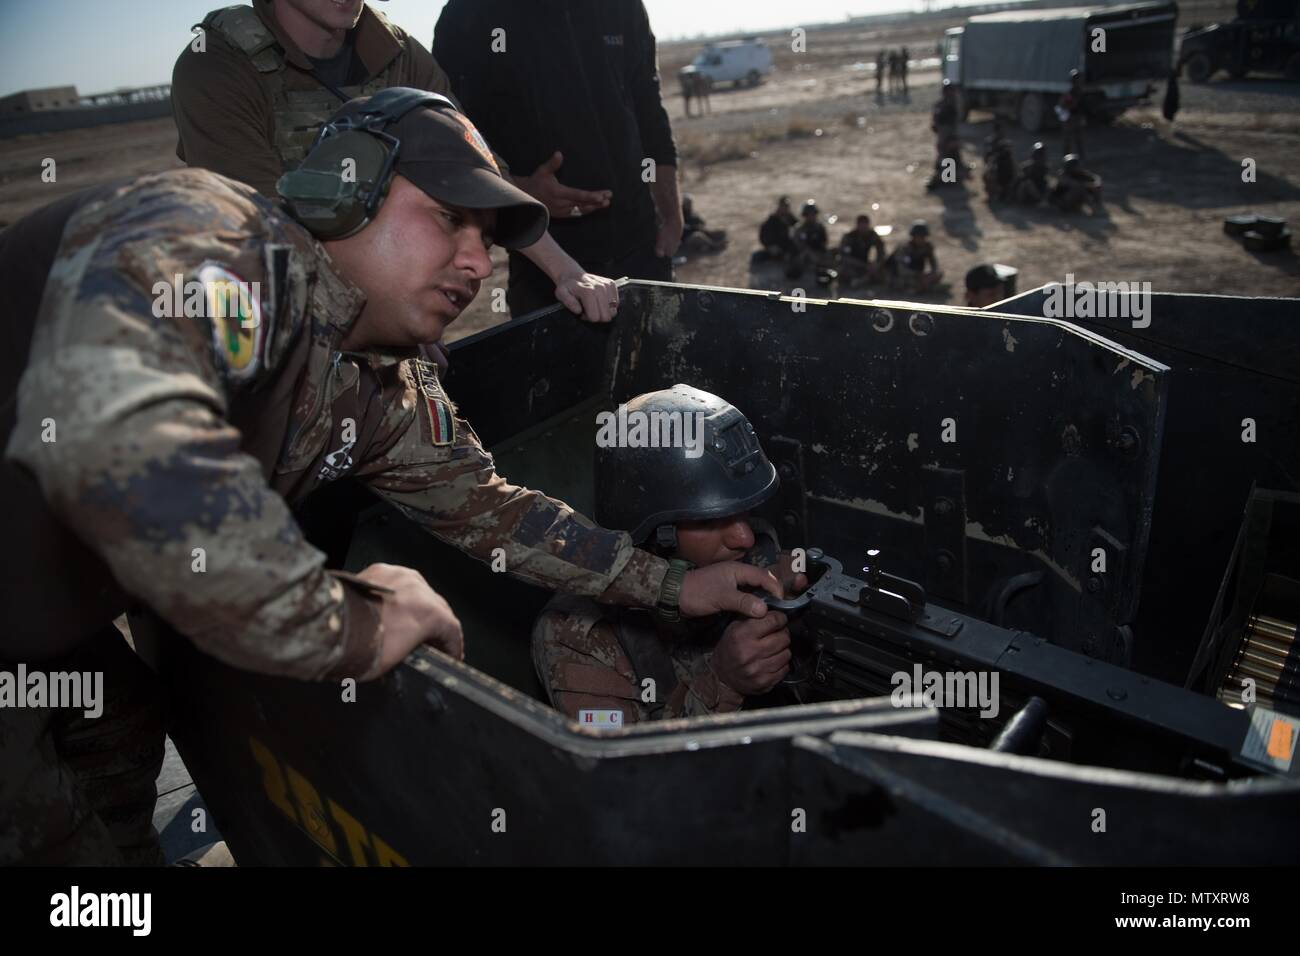 An Iraqi Counter-Terrorism Service instructor corrects a trainee operating the .50 caliber machine gun during live weapons training near Baghdad, Iraq, Jan. 31, 2017. ICTS is Iraq's elite counter-terrorism force and has proven to be an effective fighting force against ISIL. This training is part of the overall Combined Joint Task Force – Operation Inherent Resolve building partner capacity mission to increase the capacity of partnered forces fighting ISIL. CJTF-OIR is the global Coalition to defeat ISIL in Iraq and Syria. (U.S. Army photo by Staff Sgt. Alex Manne) - Stock Image